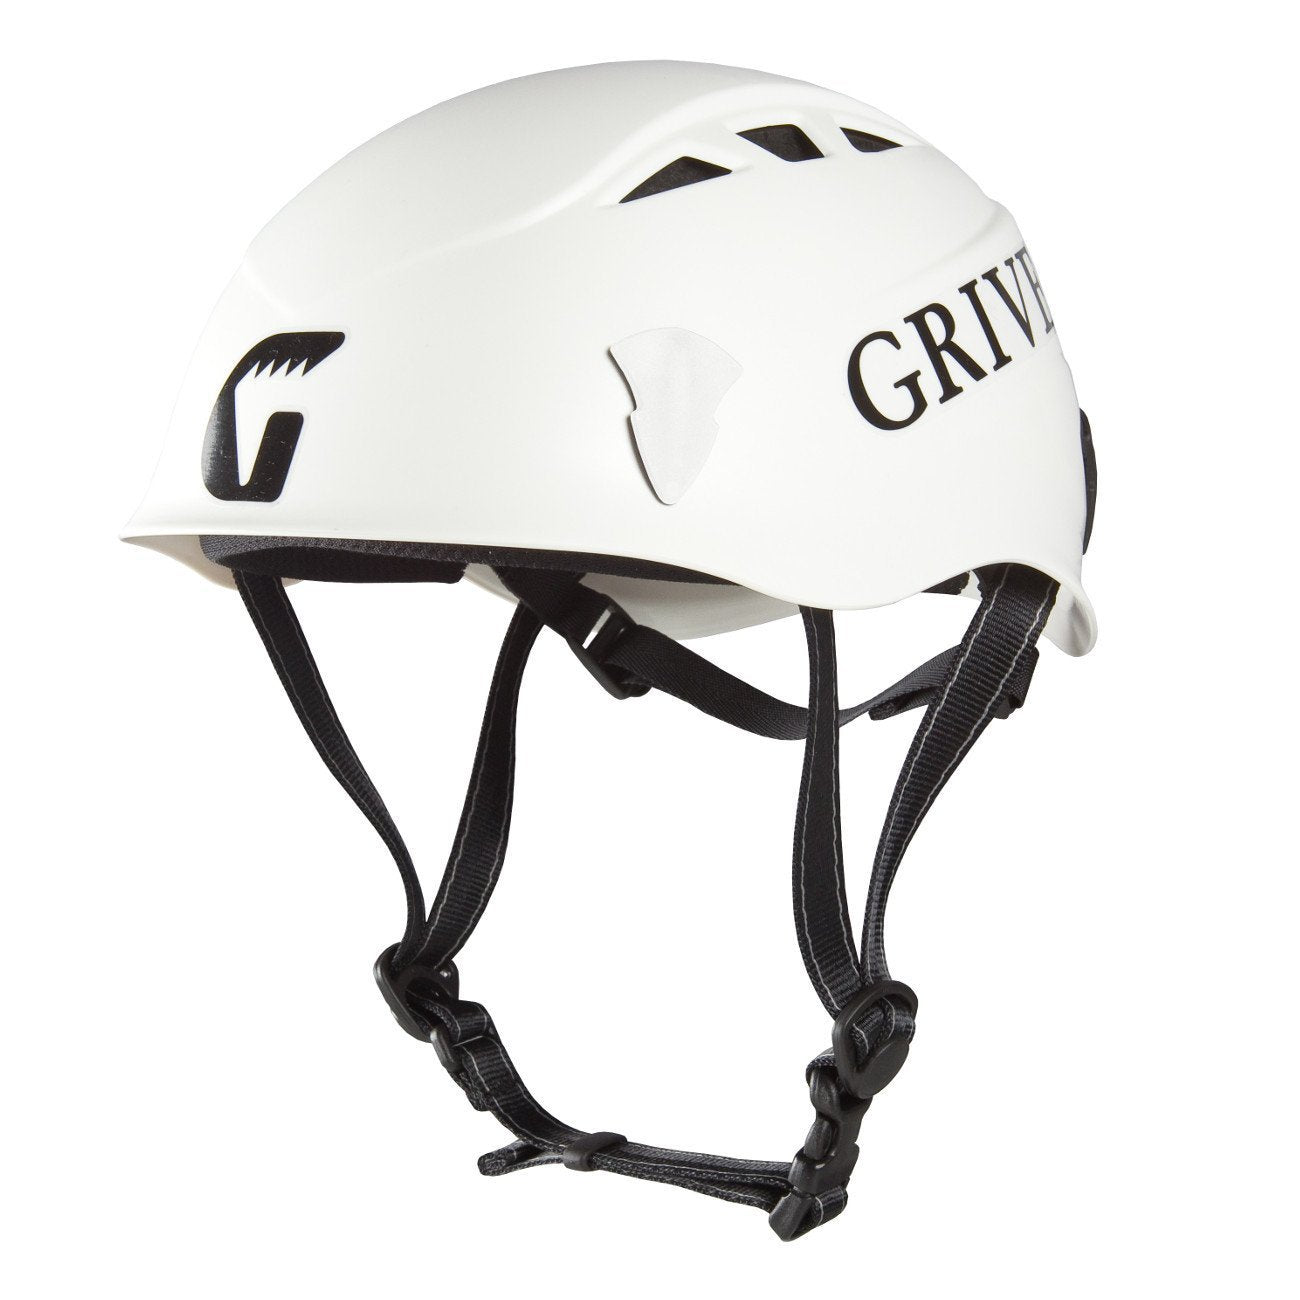 Grivel Salamander climbing helmet, in White colours